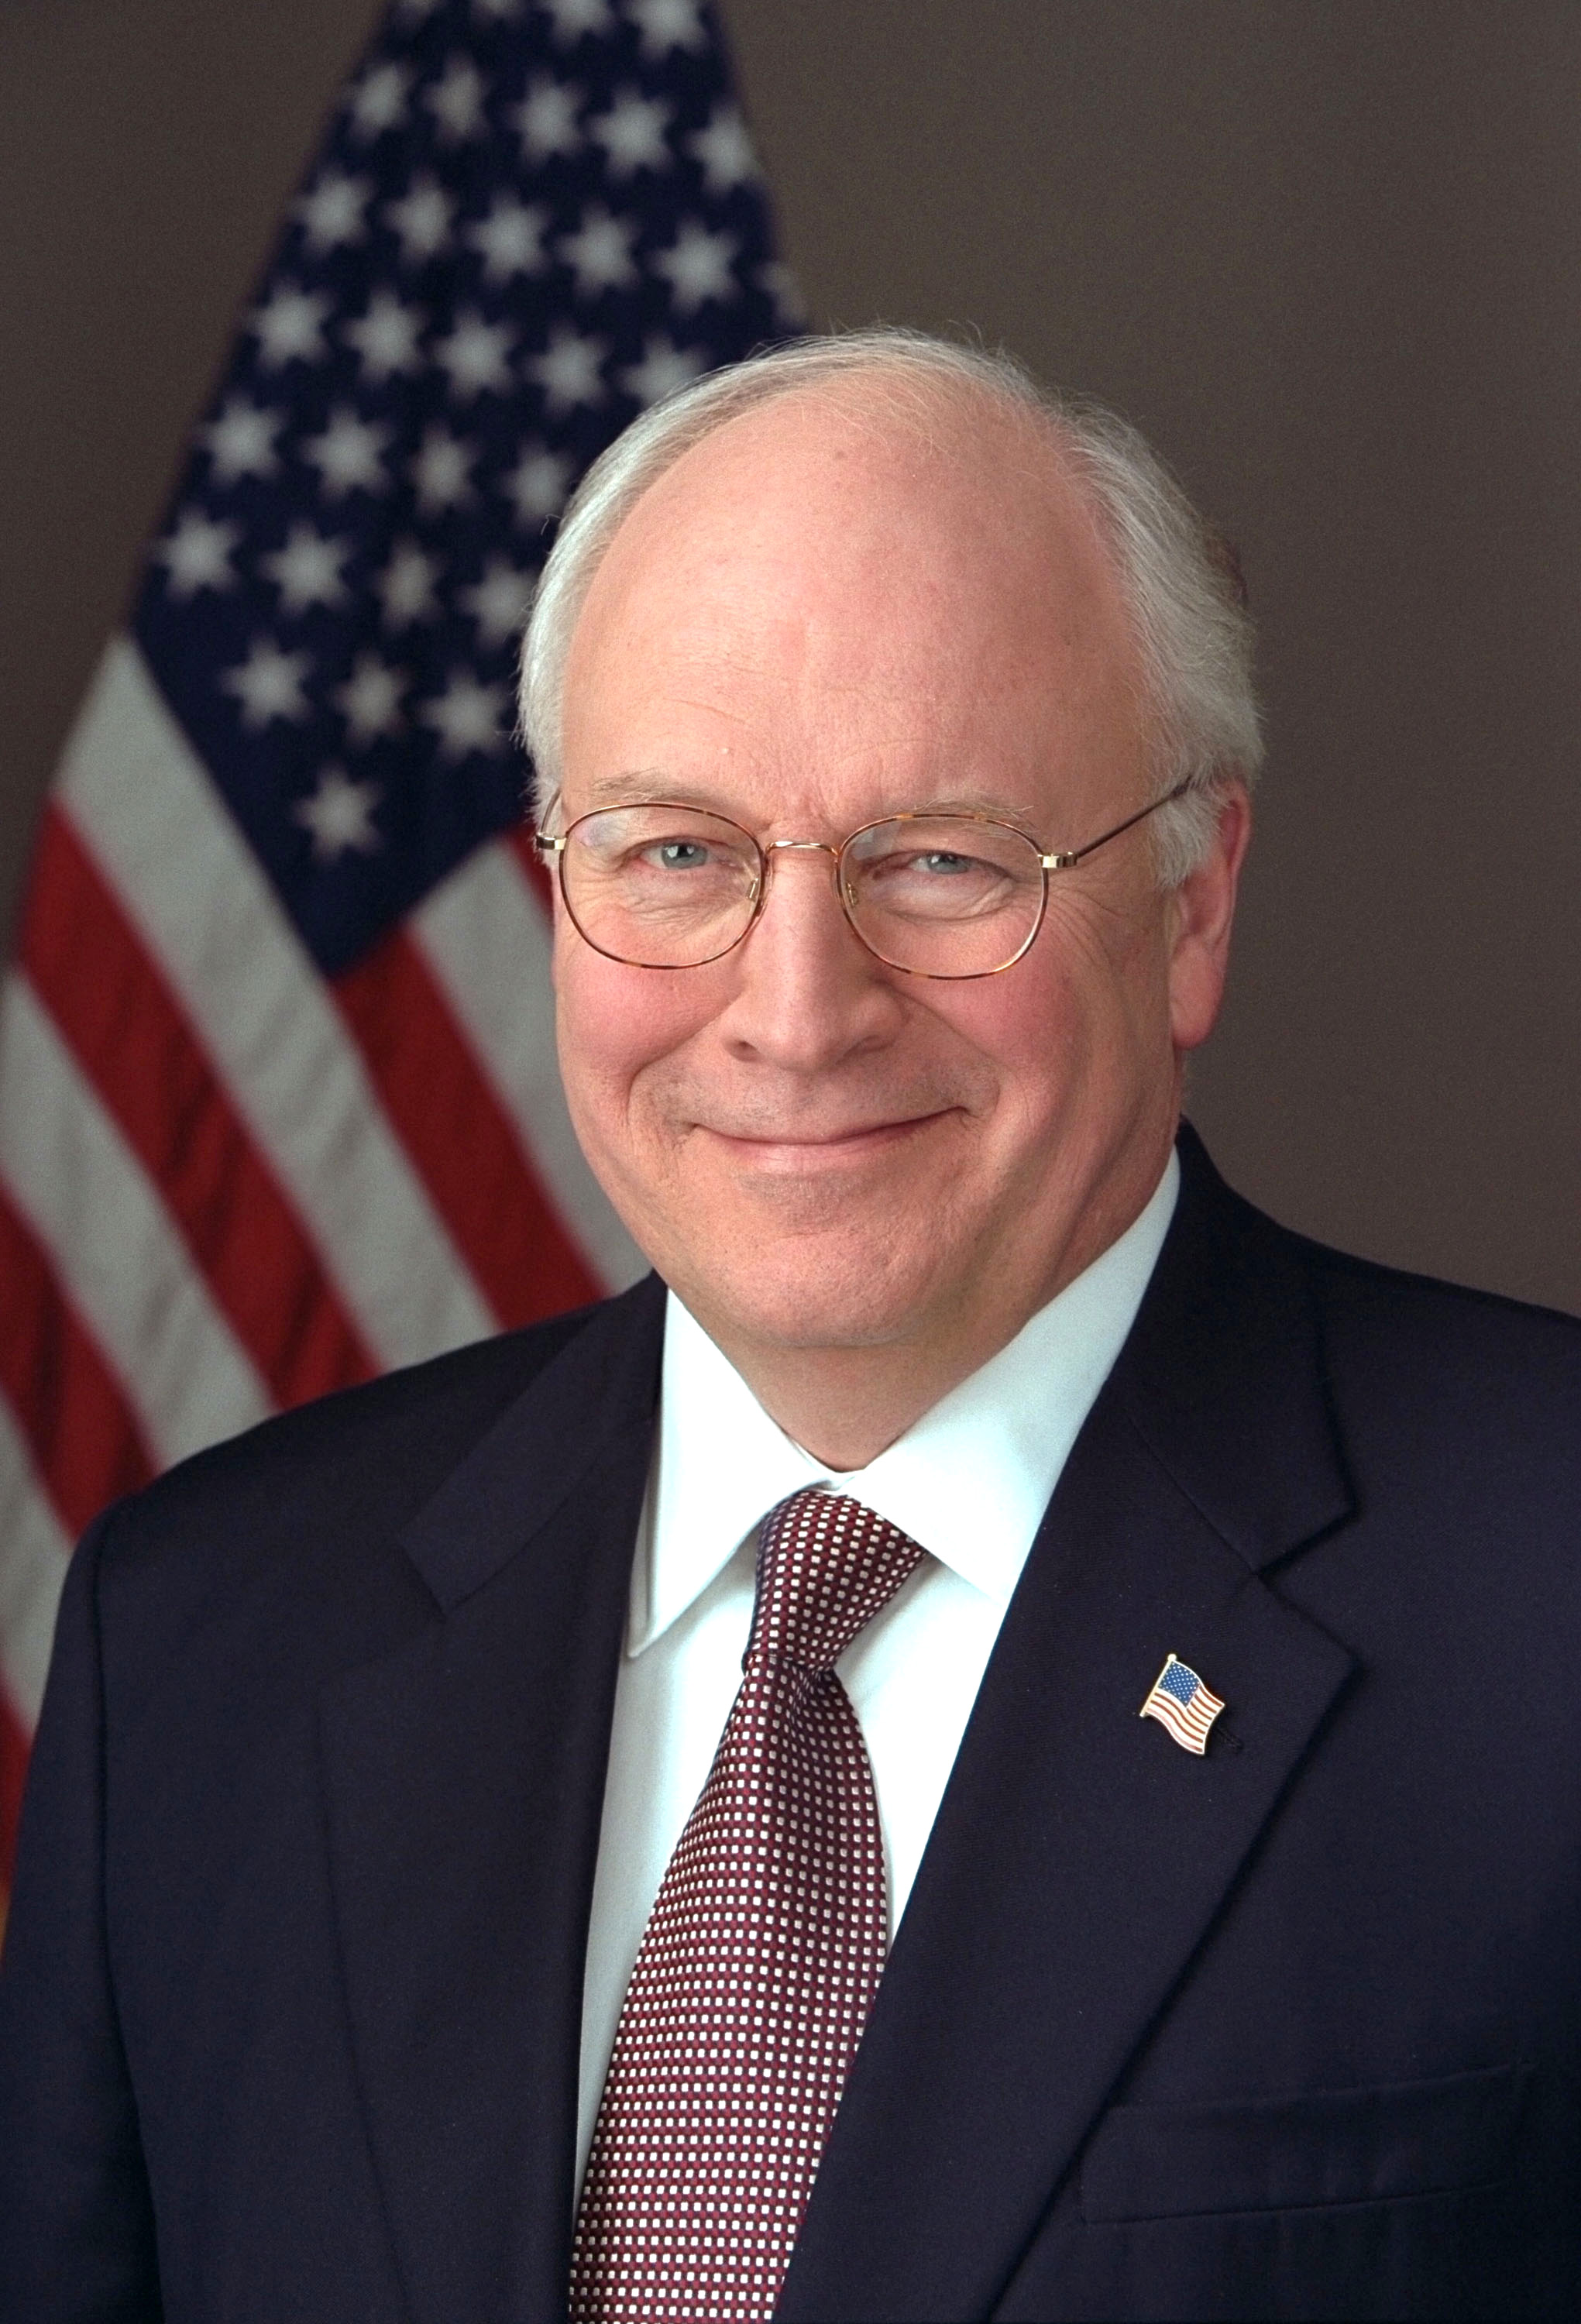 https://i2.wp.com/upload.wikimedia.org/wikipedia/commons/2/2b/Richard_Cheney_2005_official_portrait.jpg